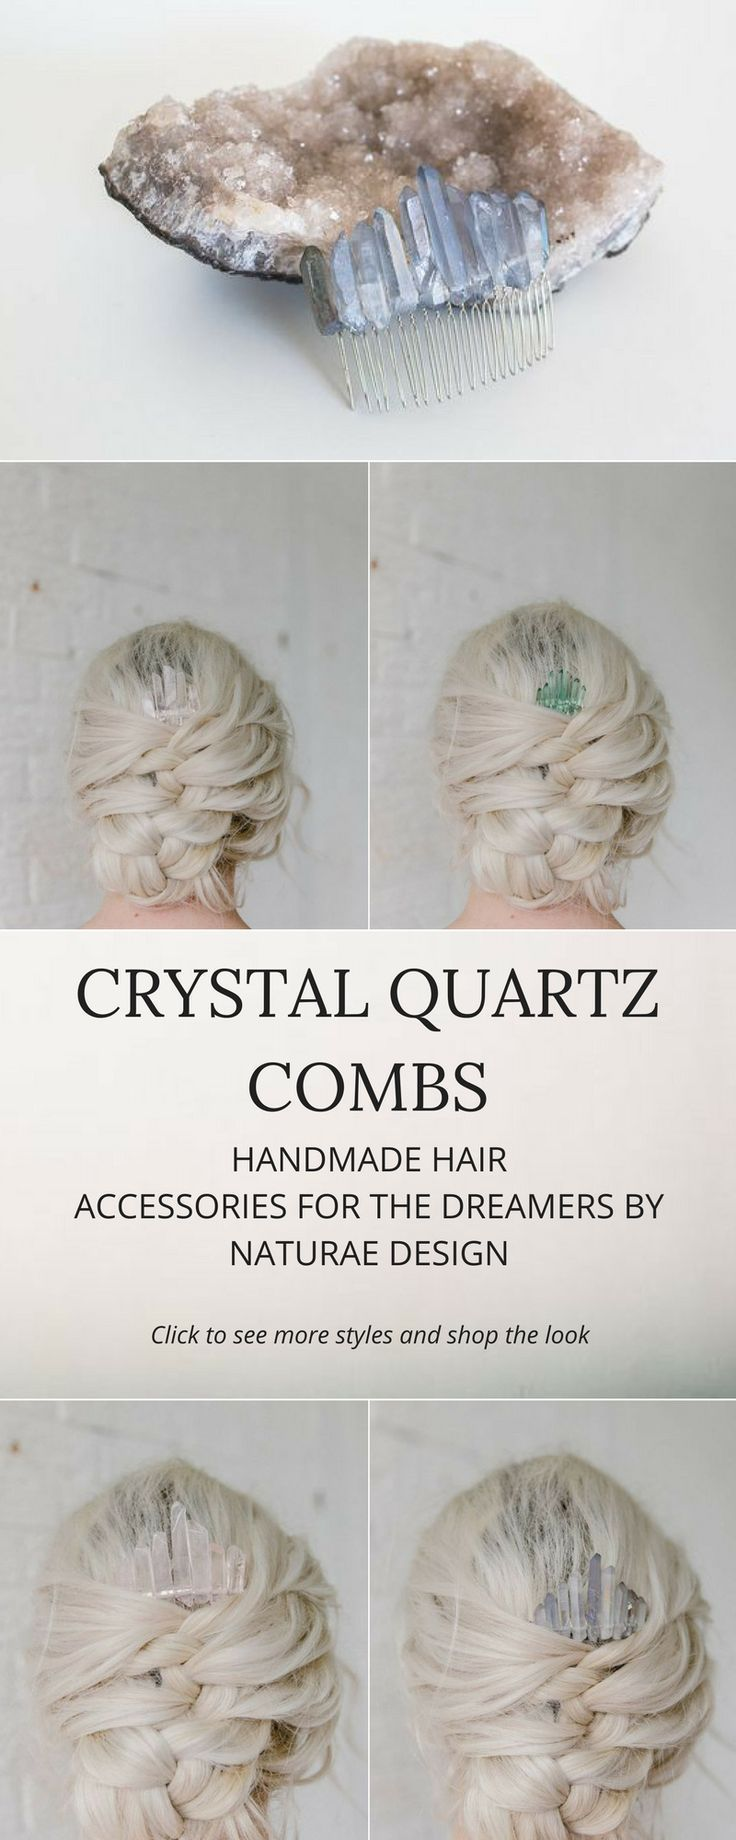 Crystal combs are a finishing touch for you modern Celestial inspired updo. Handmade in the studio with Quartz stones. Available in different shapes and colors. Shop the look at: https://naturae-design.com/WEBSHOP.html#!/combs/sort/age-ascending